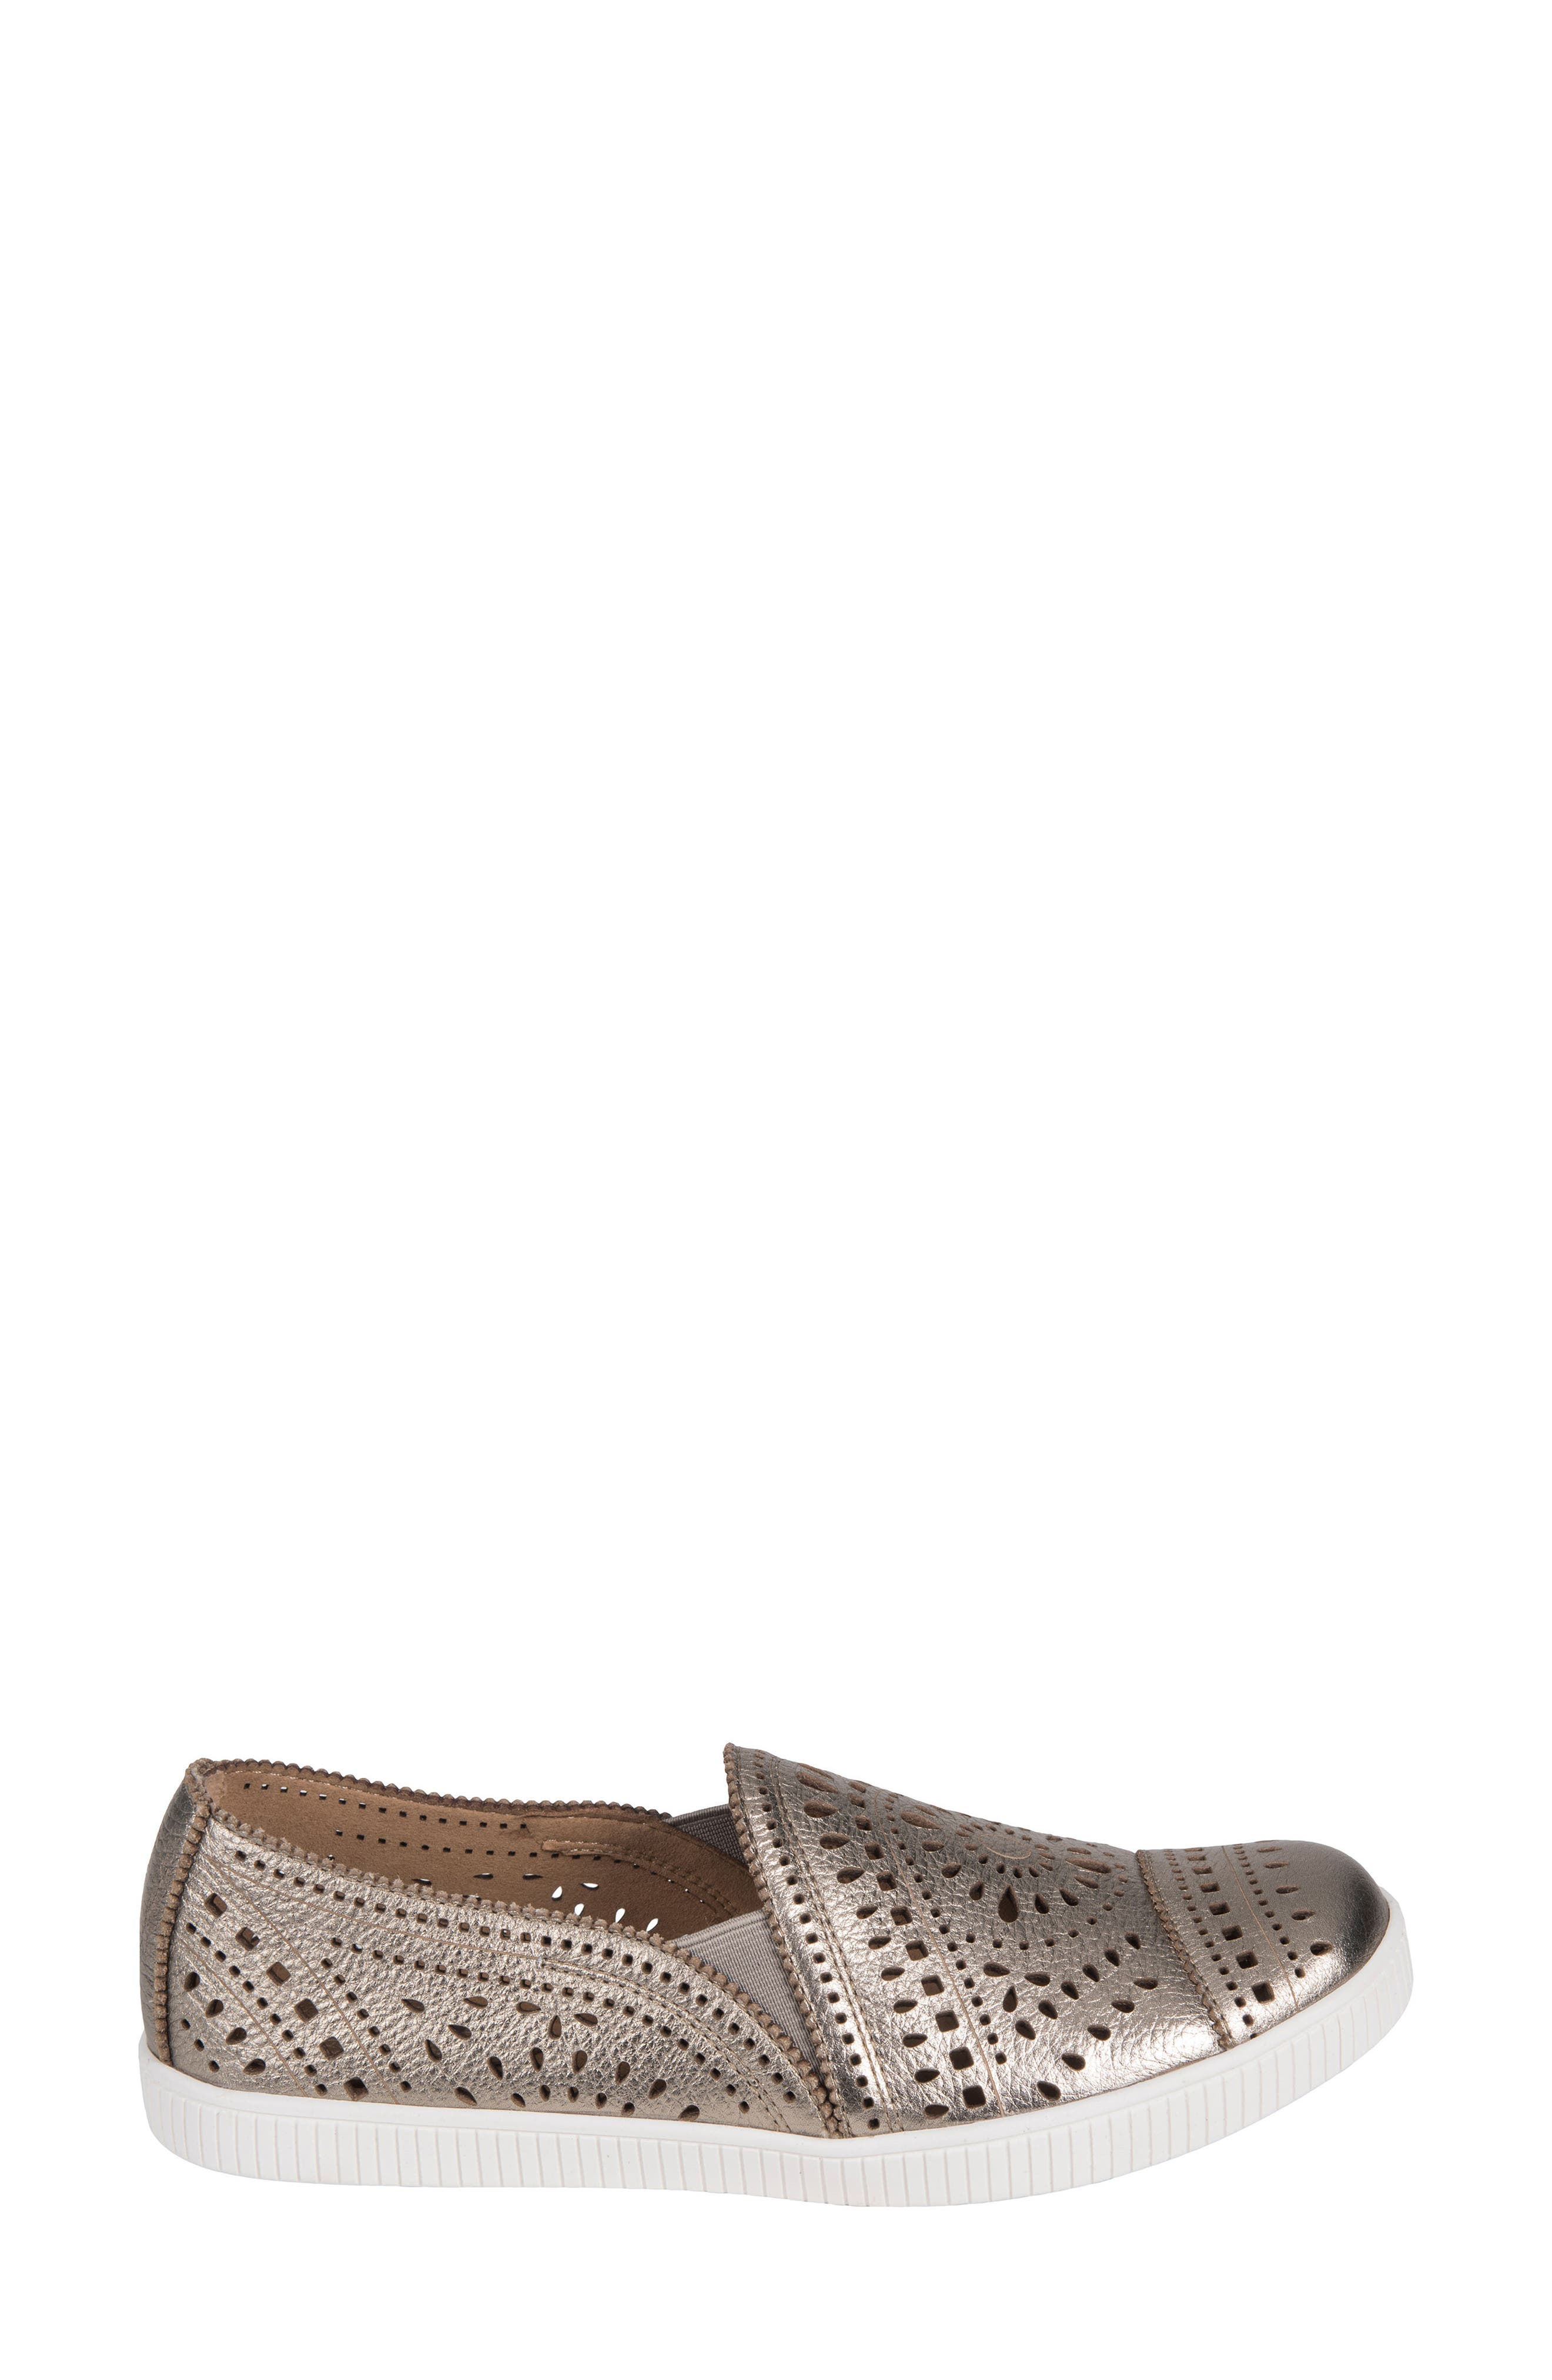 Tayberry Perforated Slip-On Sneaker,                             Alternate thumbnail 12, color,